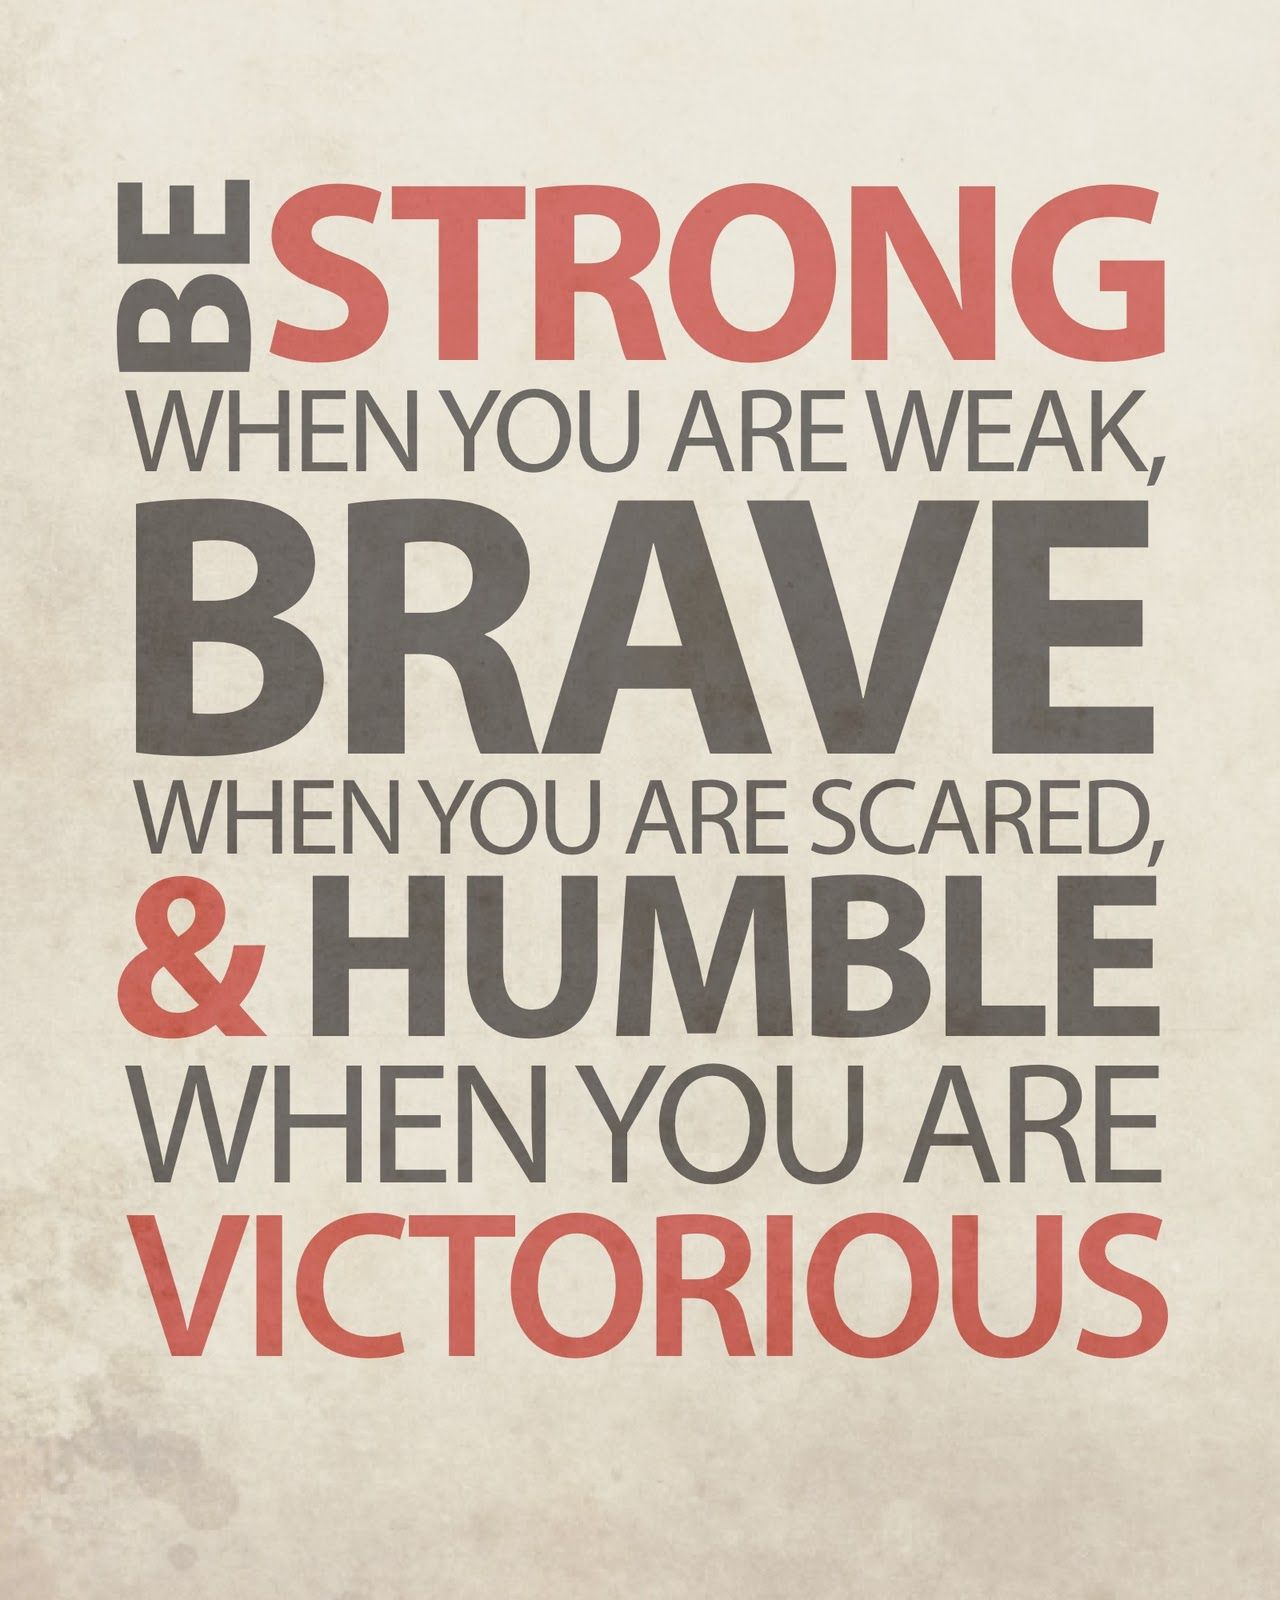 Be Strong Inspirational Quotes: Quotes, Inspirational Quotes